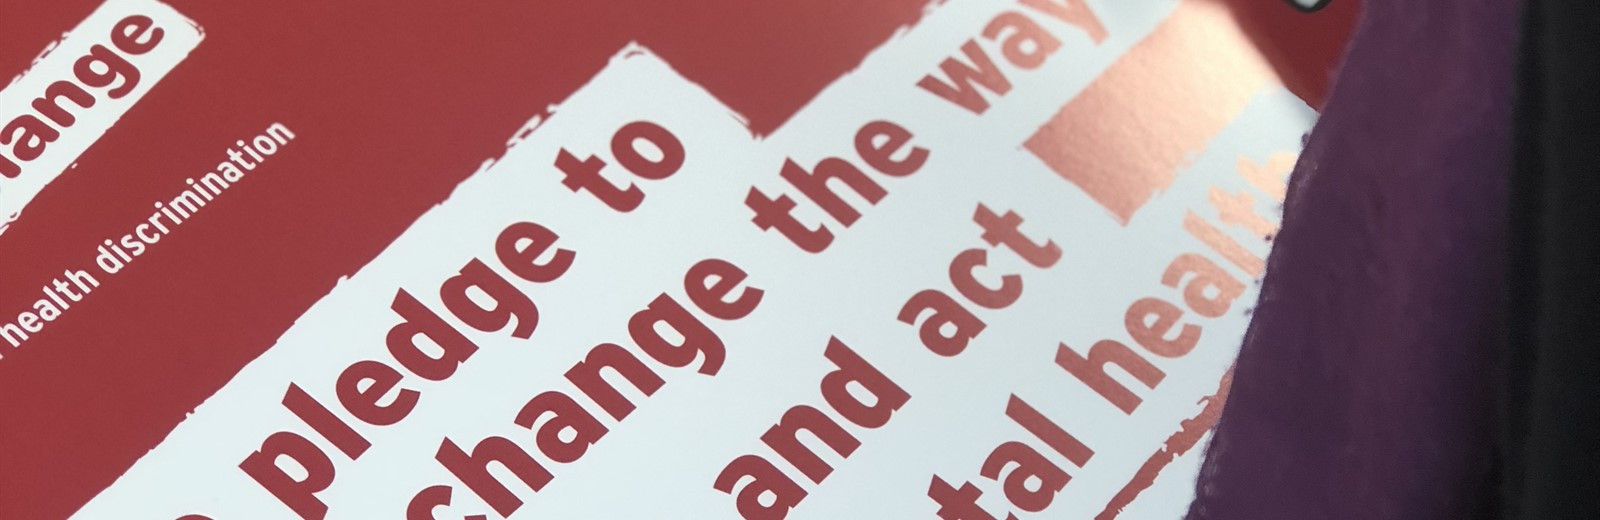 Steps To Work Sign The Pledge To Change How We All Think and Act About Mental Health